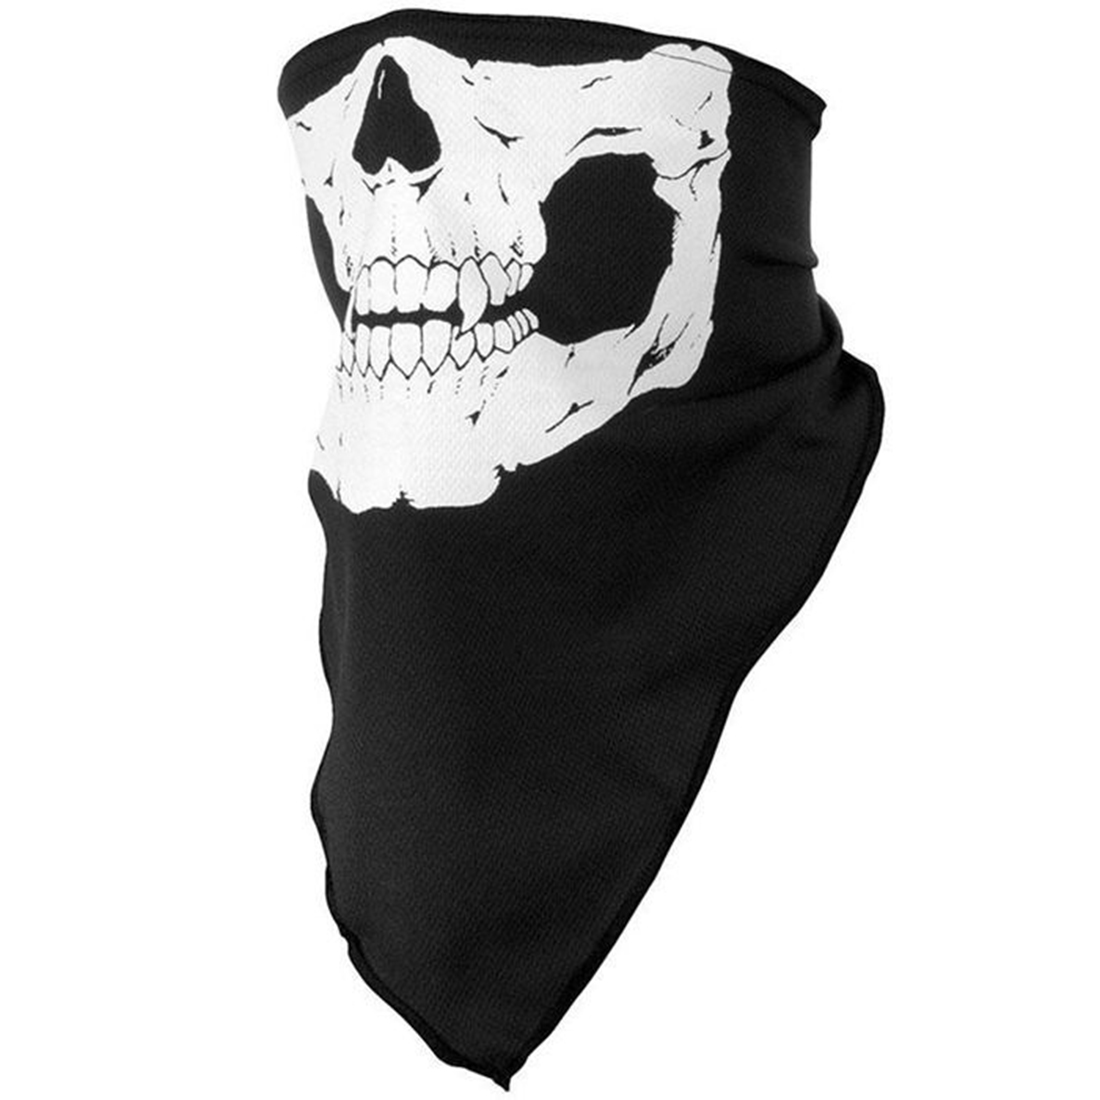 US $1 09 30% OFF|Novelty Skull Wicking Seamless Washouts Scarf Cool Outdoor  Ride Luxury Pattern Designed Bandanas Sport Skull Scarves-in Girl's